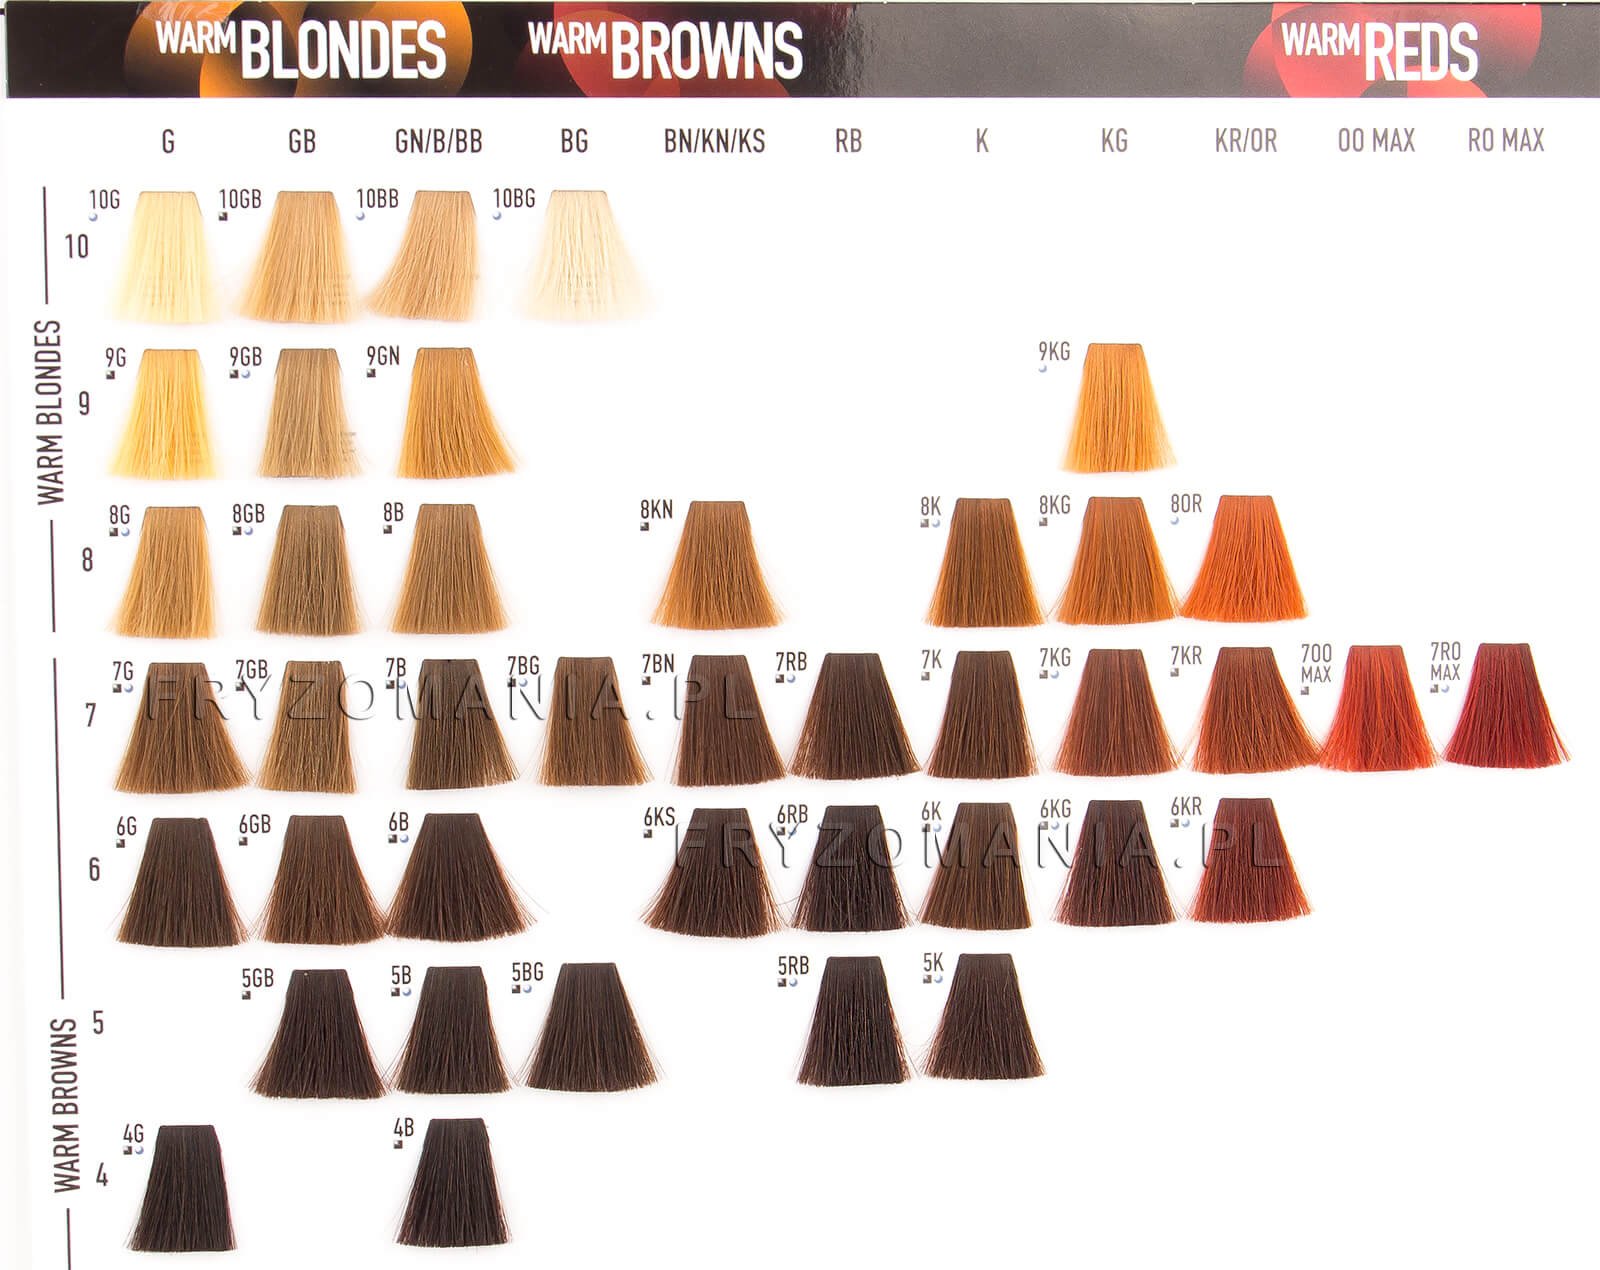 goldwell-warm-blondes-warm-browns